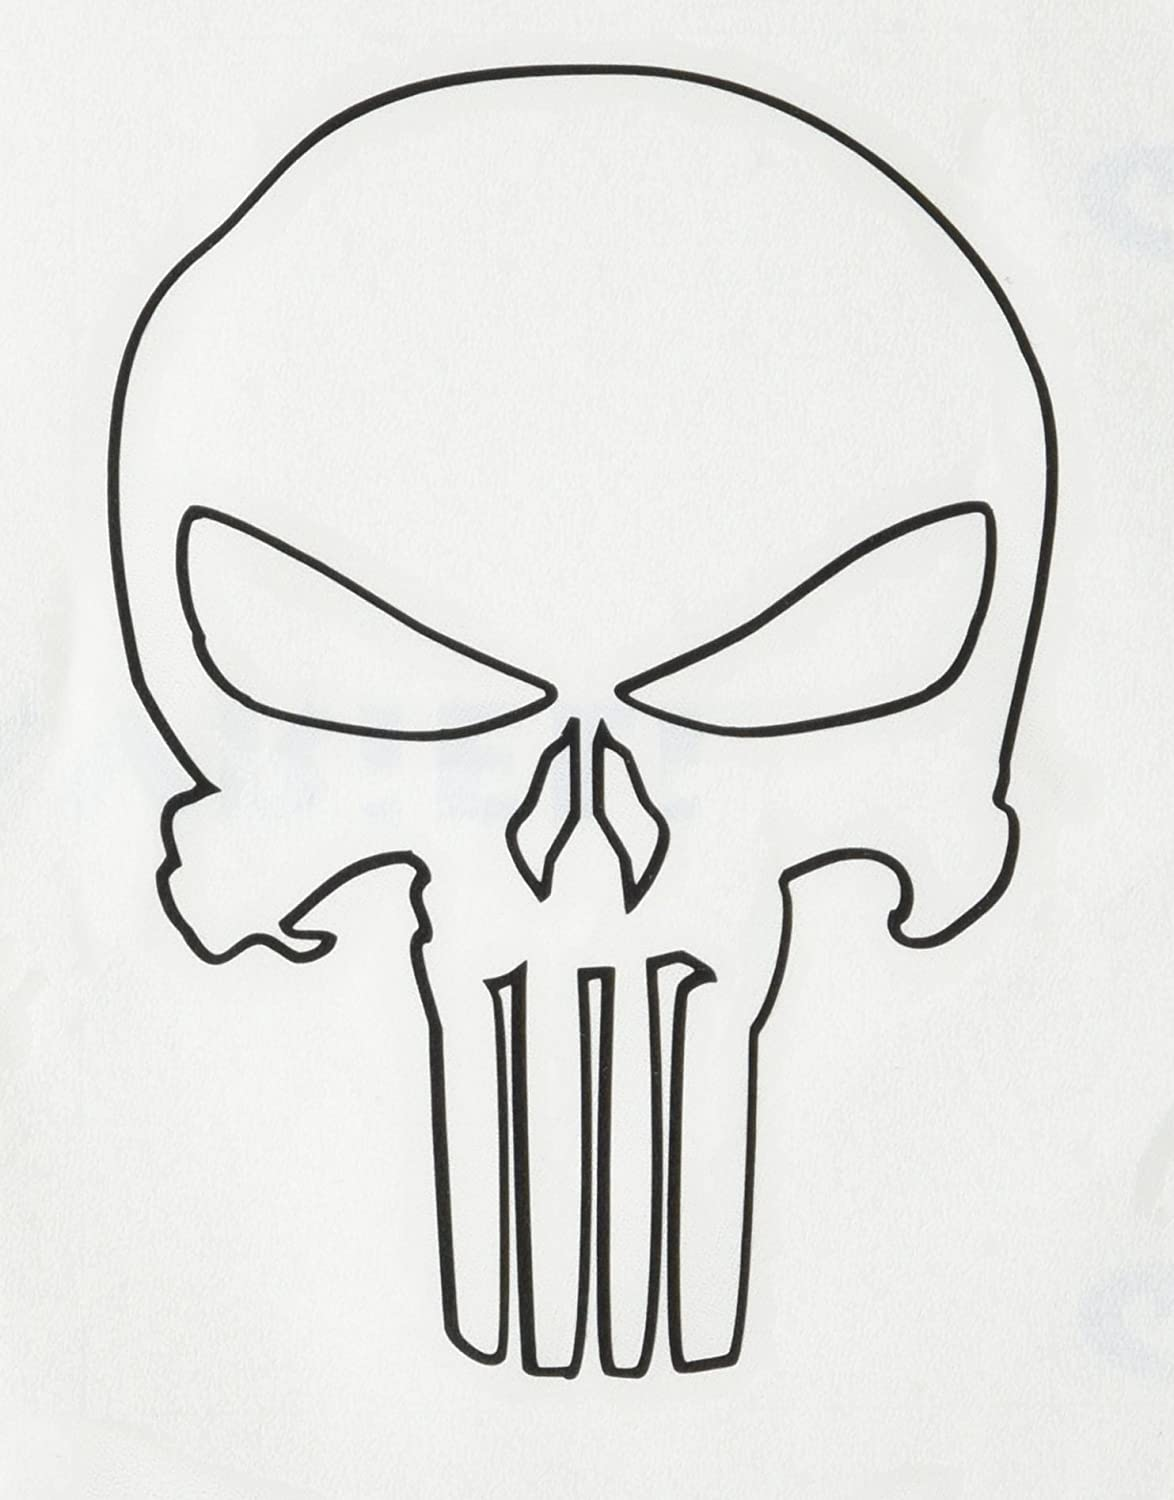 Punisher Skull Outline Related on Fall Coloring Pages